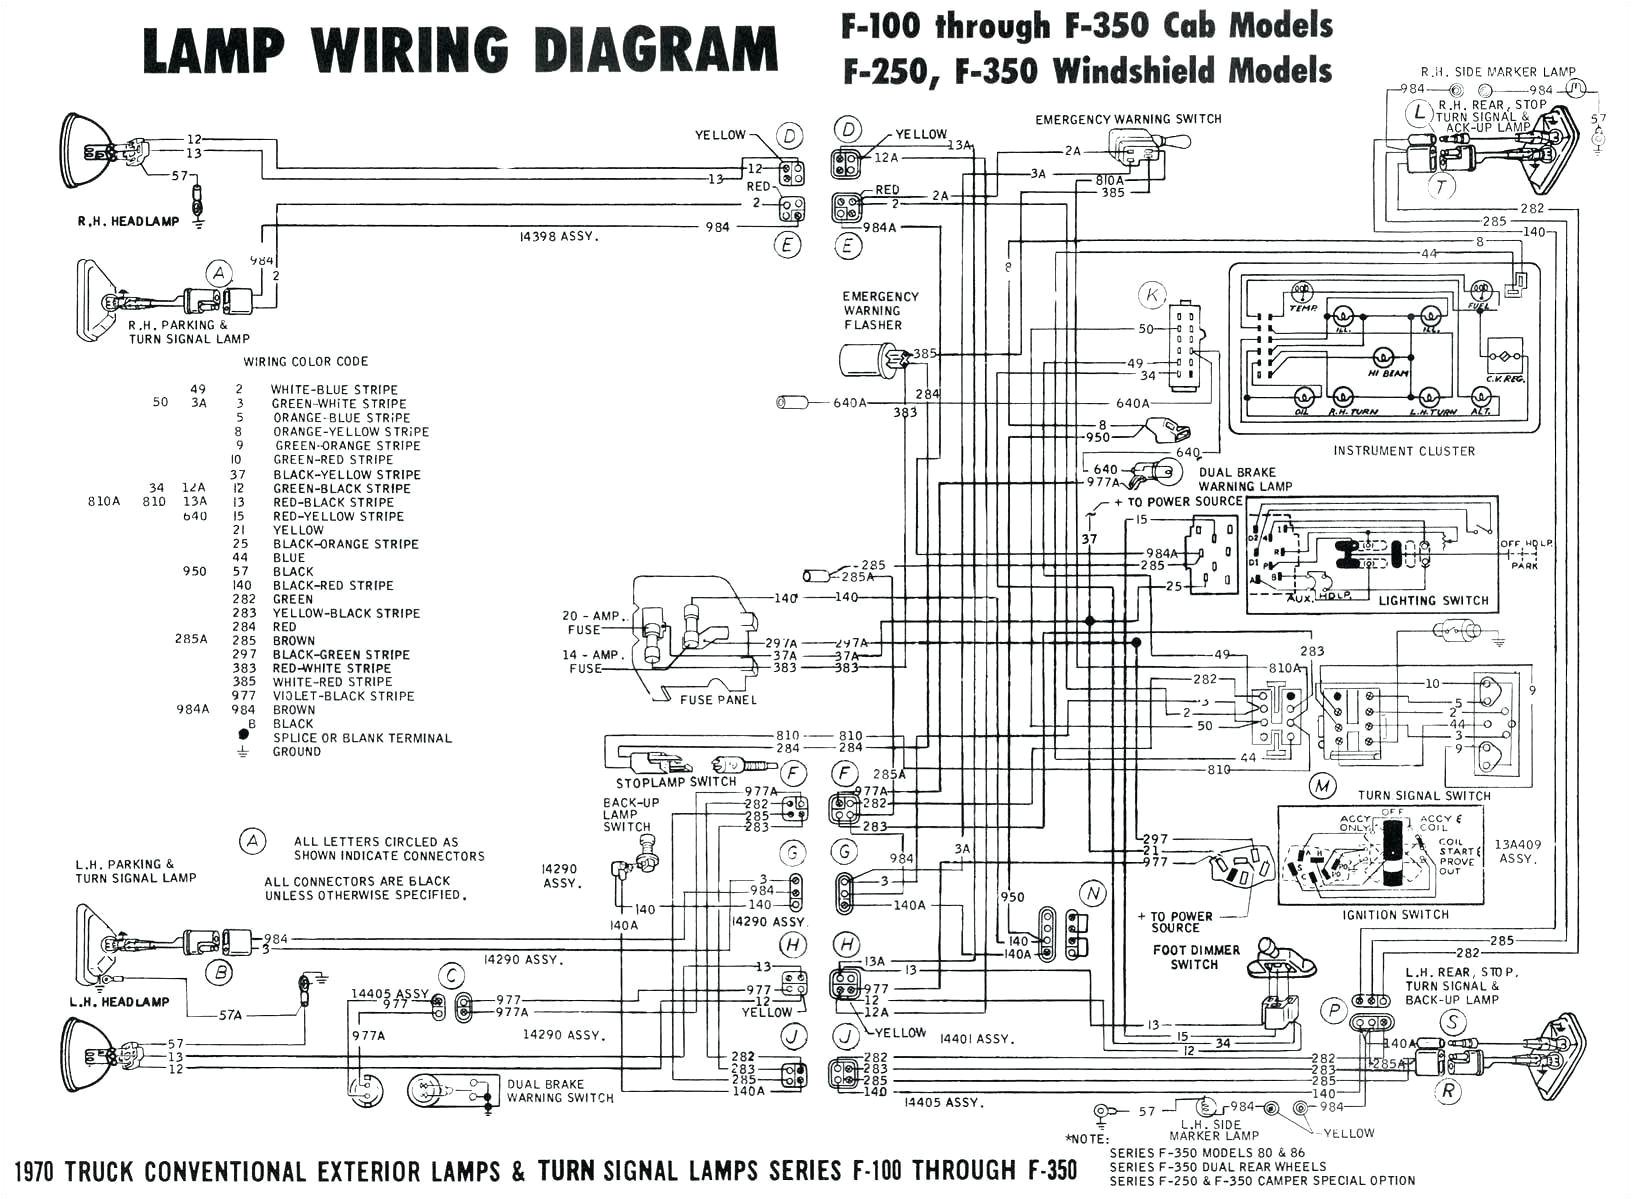 2001 ford ranger dome light unique 2000 ford ranger dome light wiring diagram free download wiring of 2001 ford ranger dome light jpg